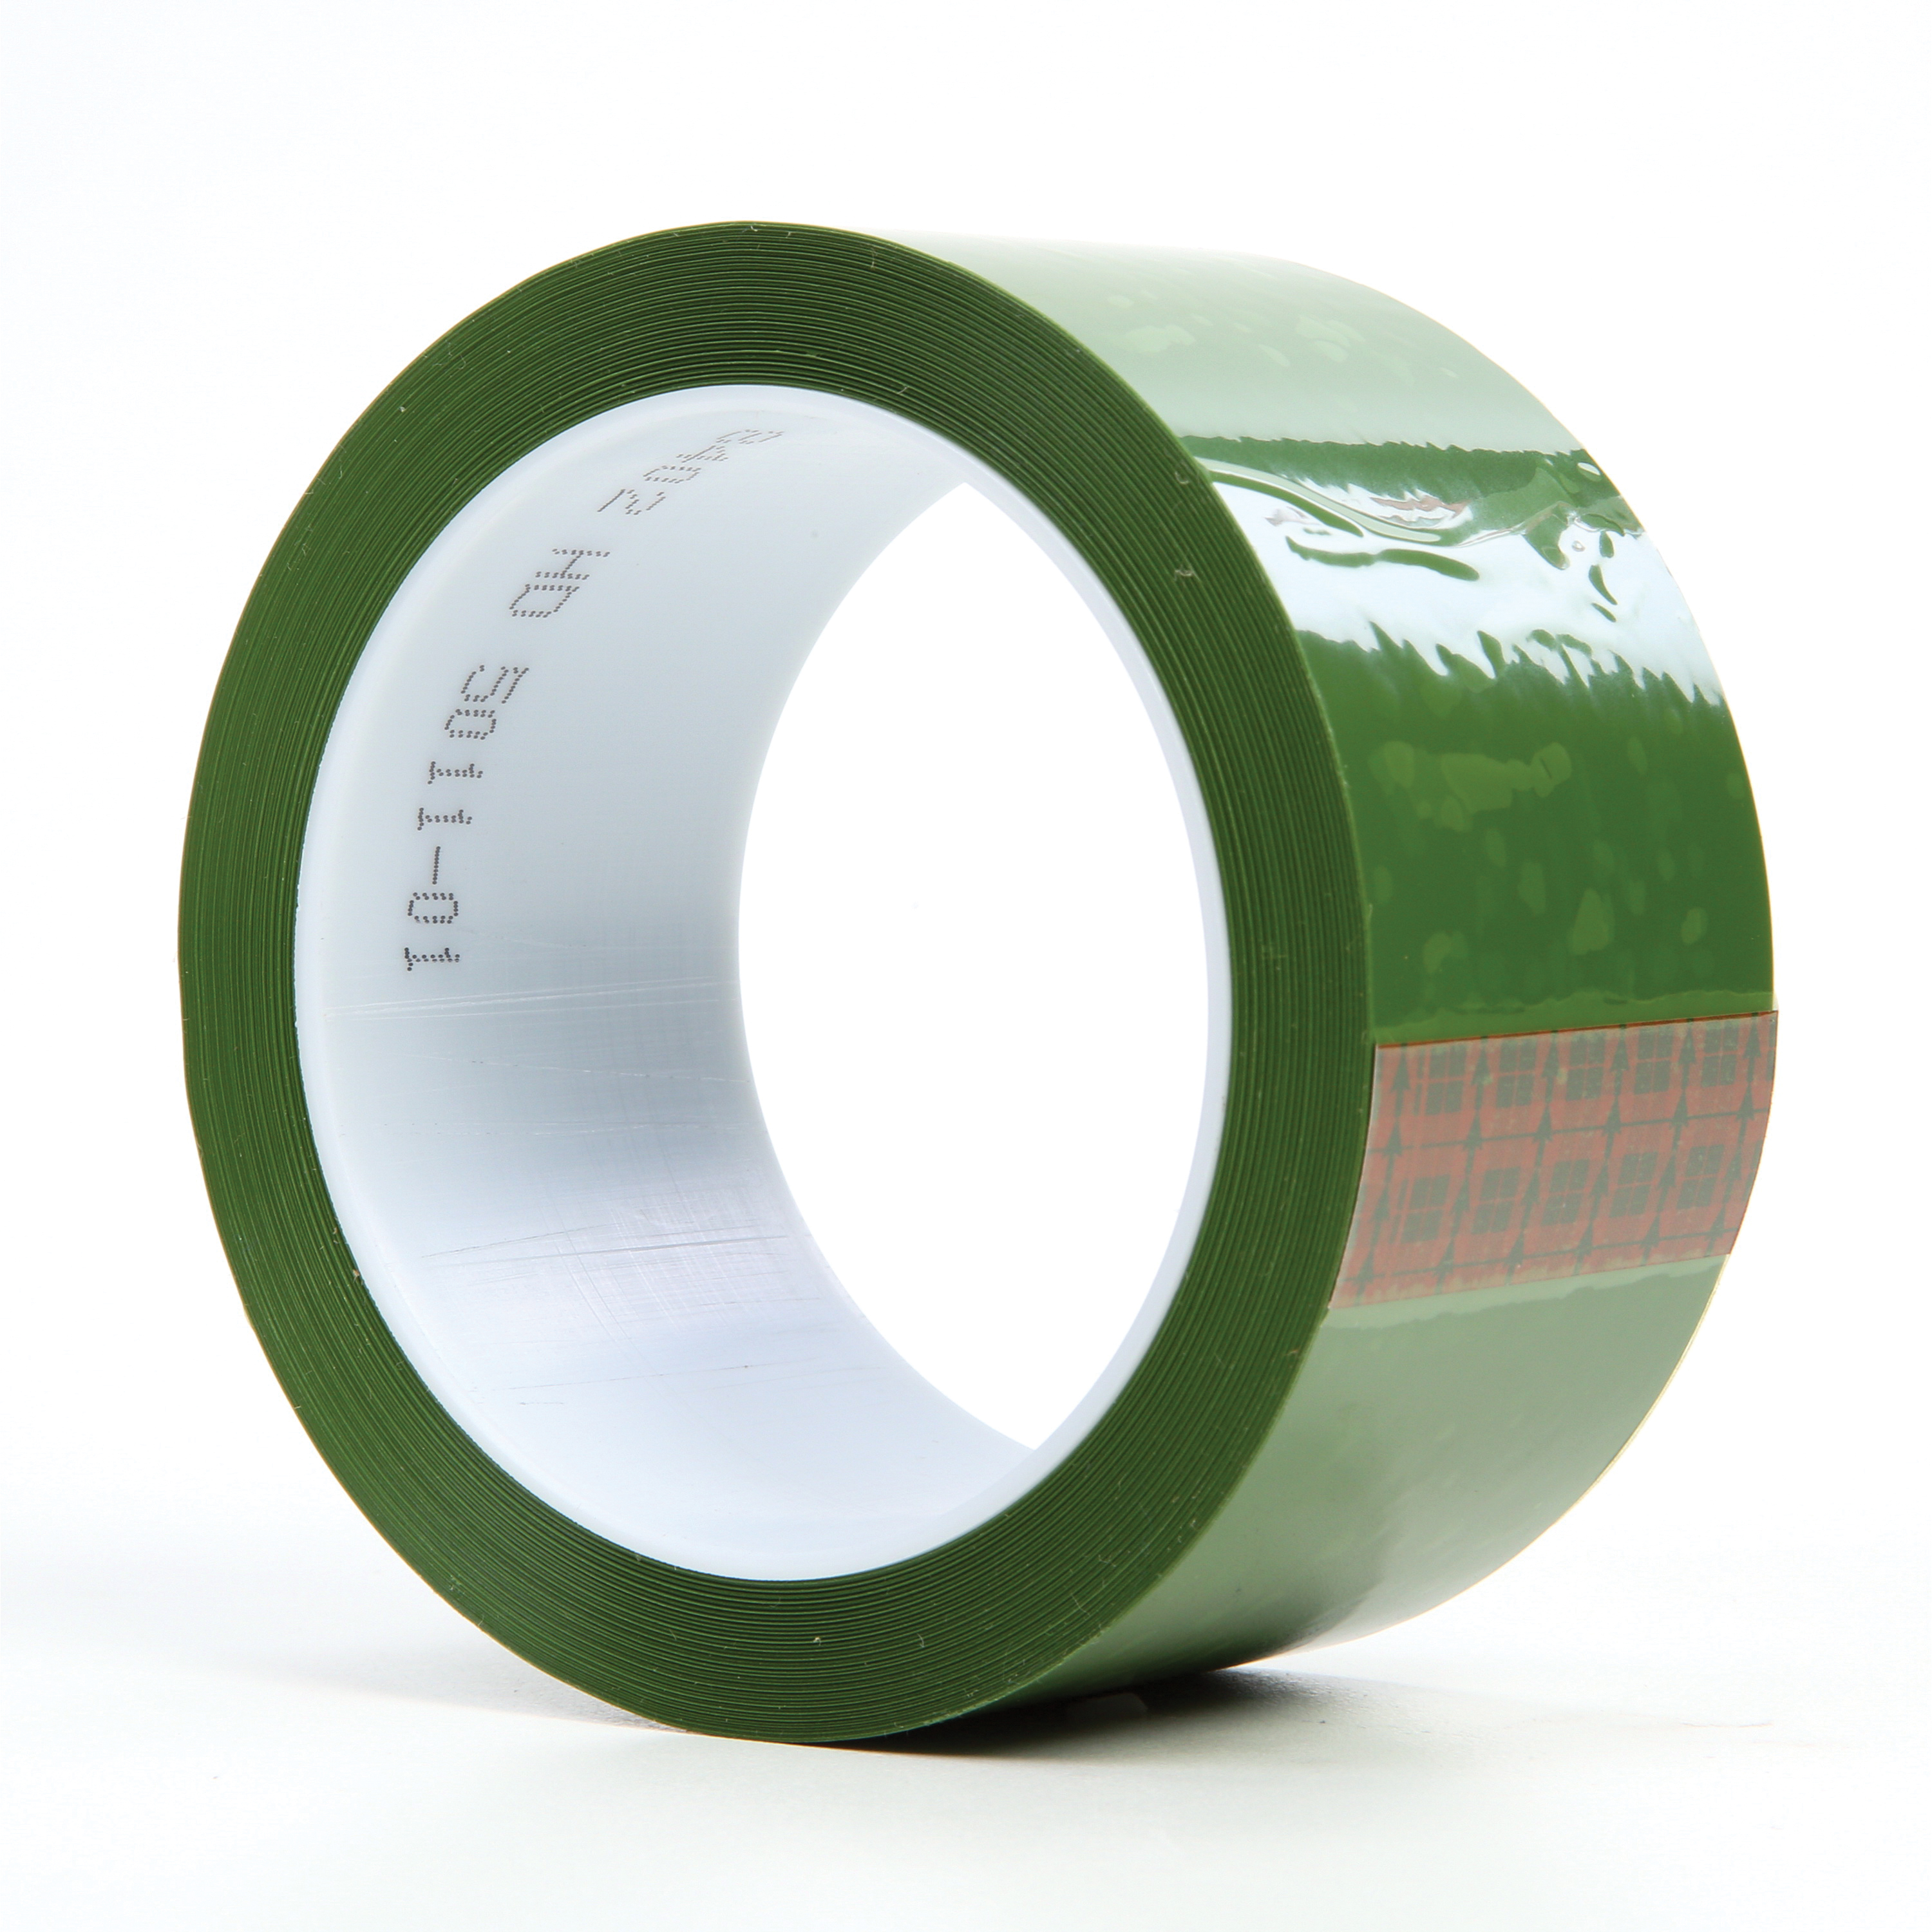 3M™ 021200-04368 Masking Tape, 72 yd L x 2 in W, 1.9 mil THK, Silicone Adhesive, 0.9 mil Polyester Backing